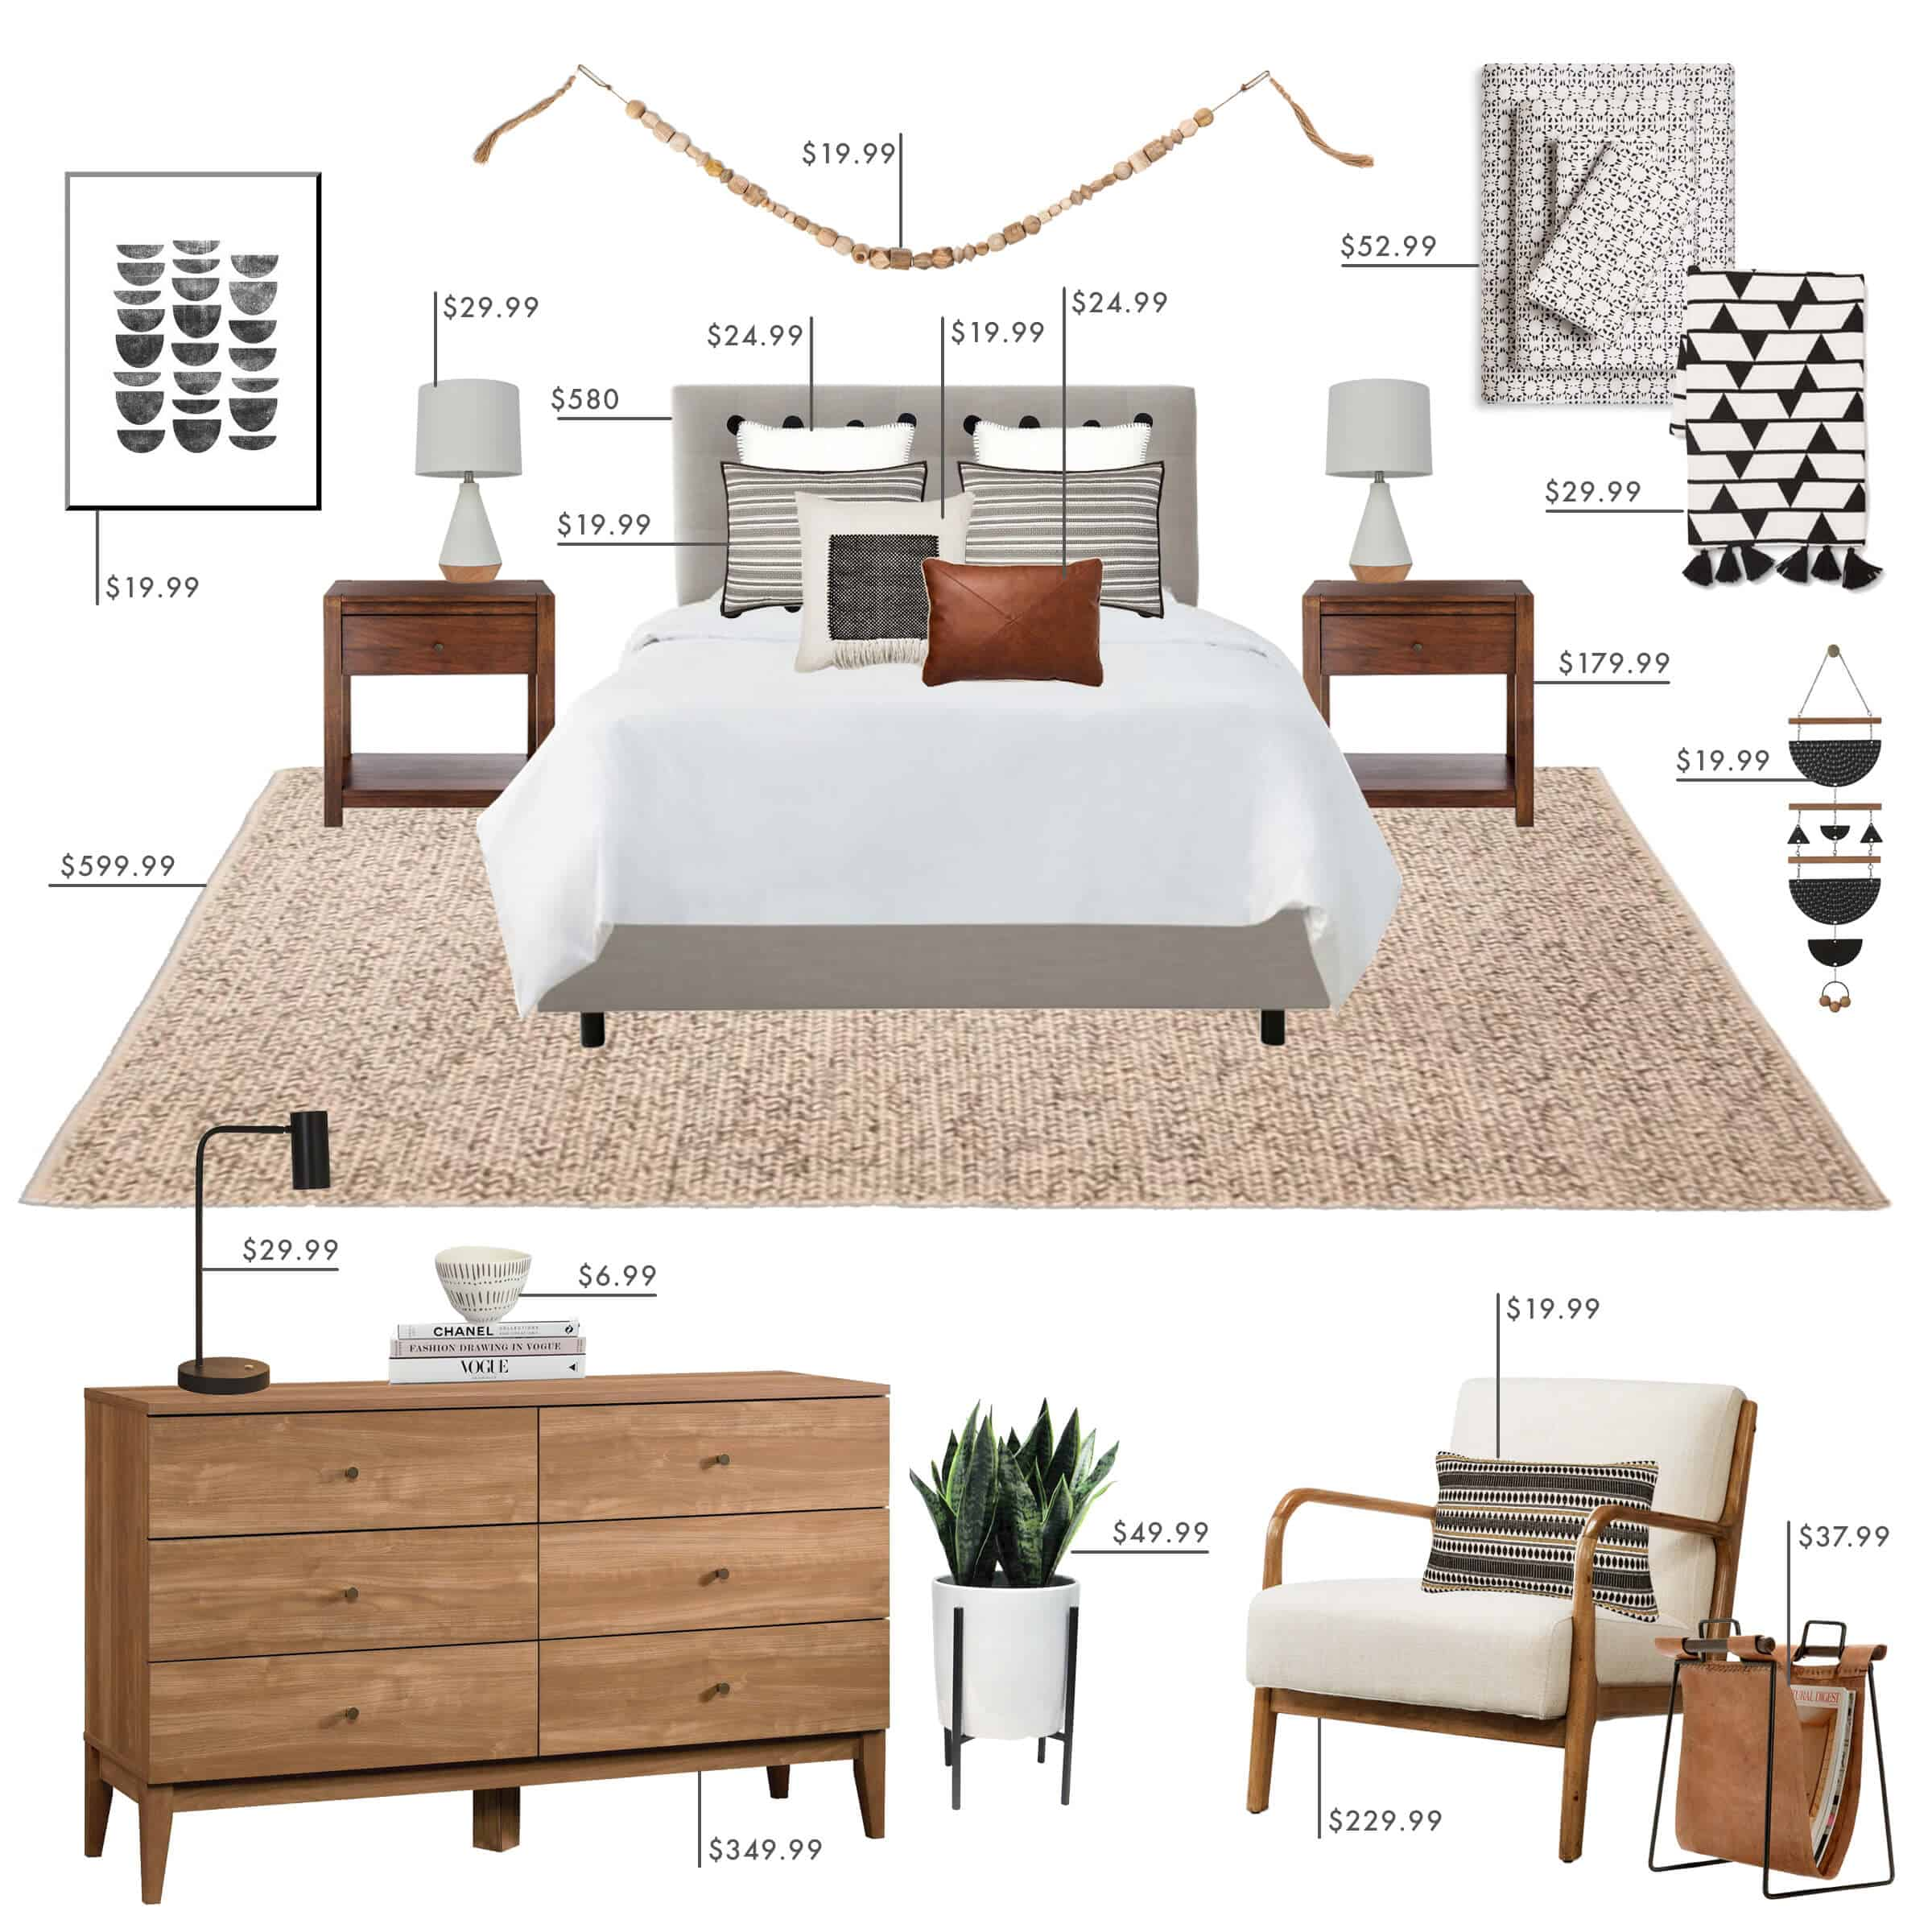 Emily Henderson Target Bedroom California Casual